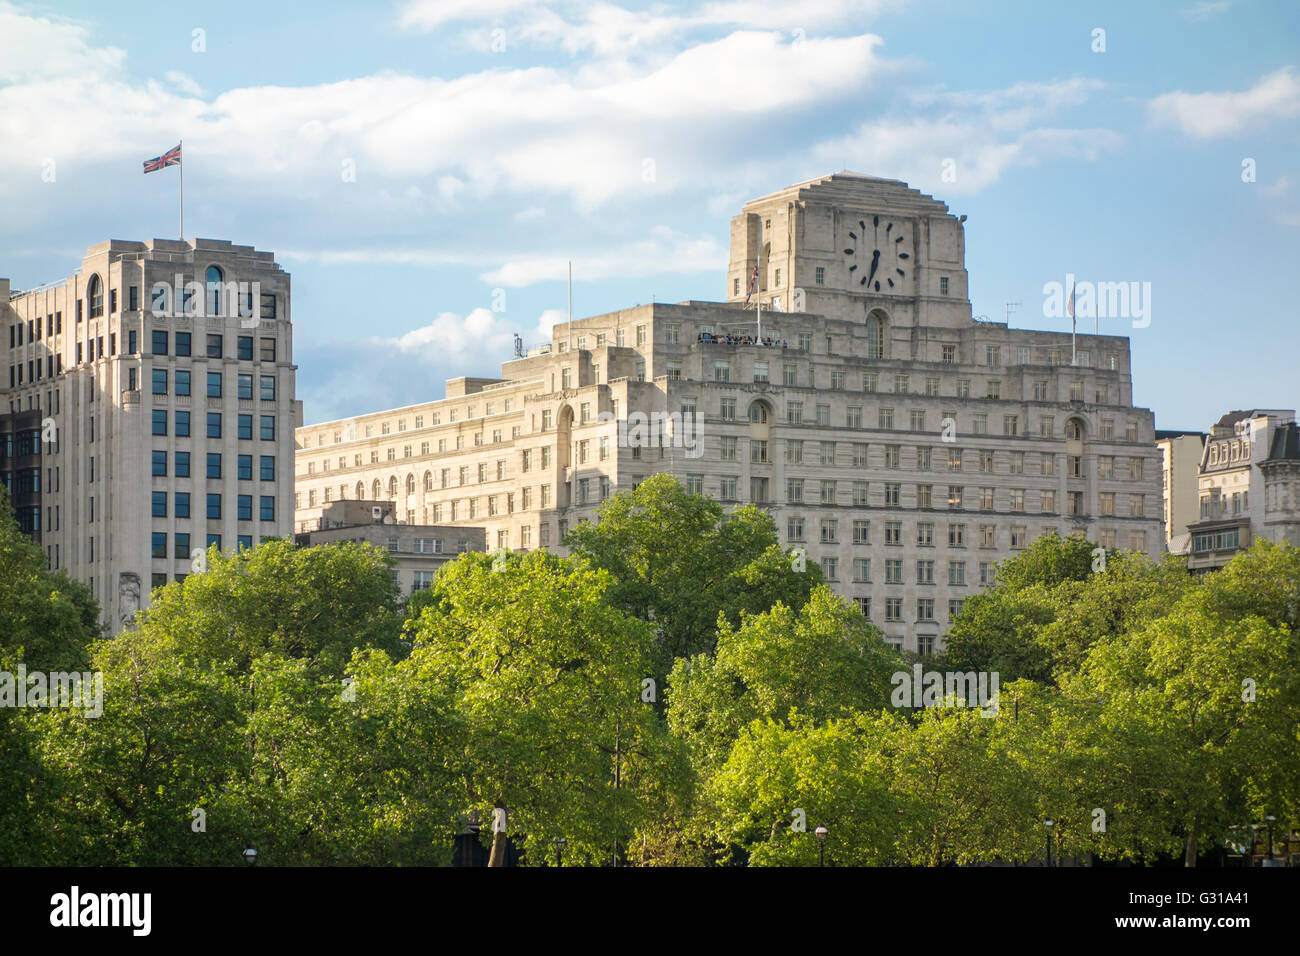 The Savoy hotel viewed over Victoria Embankment. London, UK - Stock Image